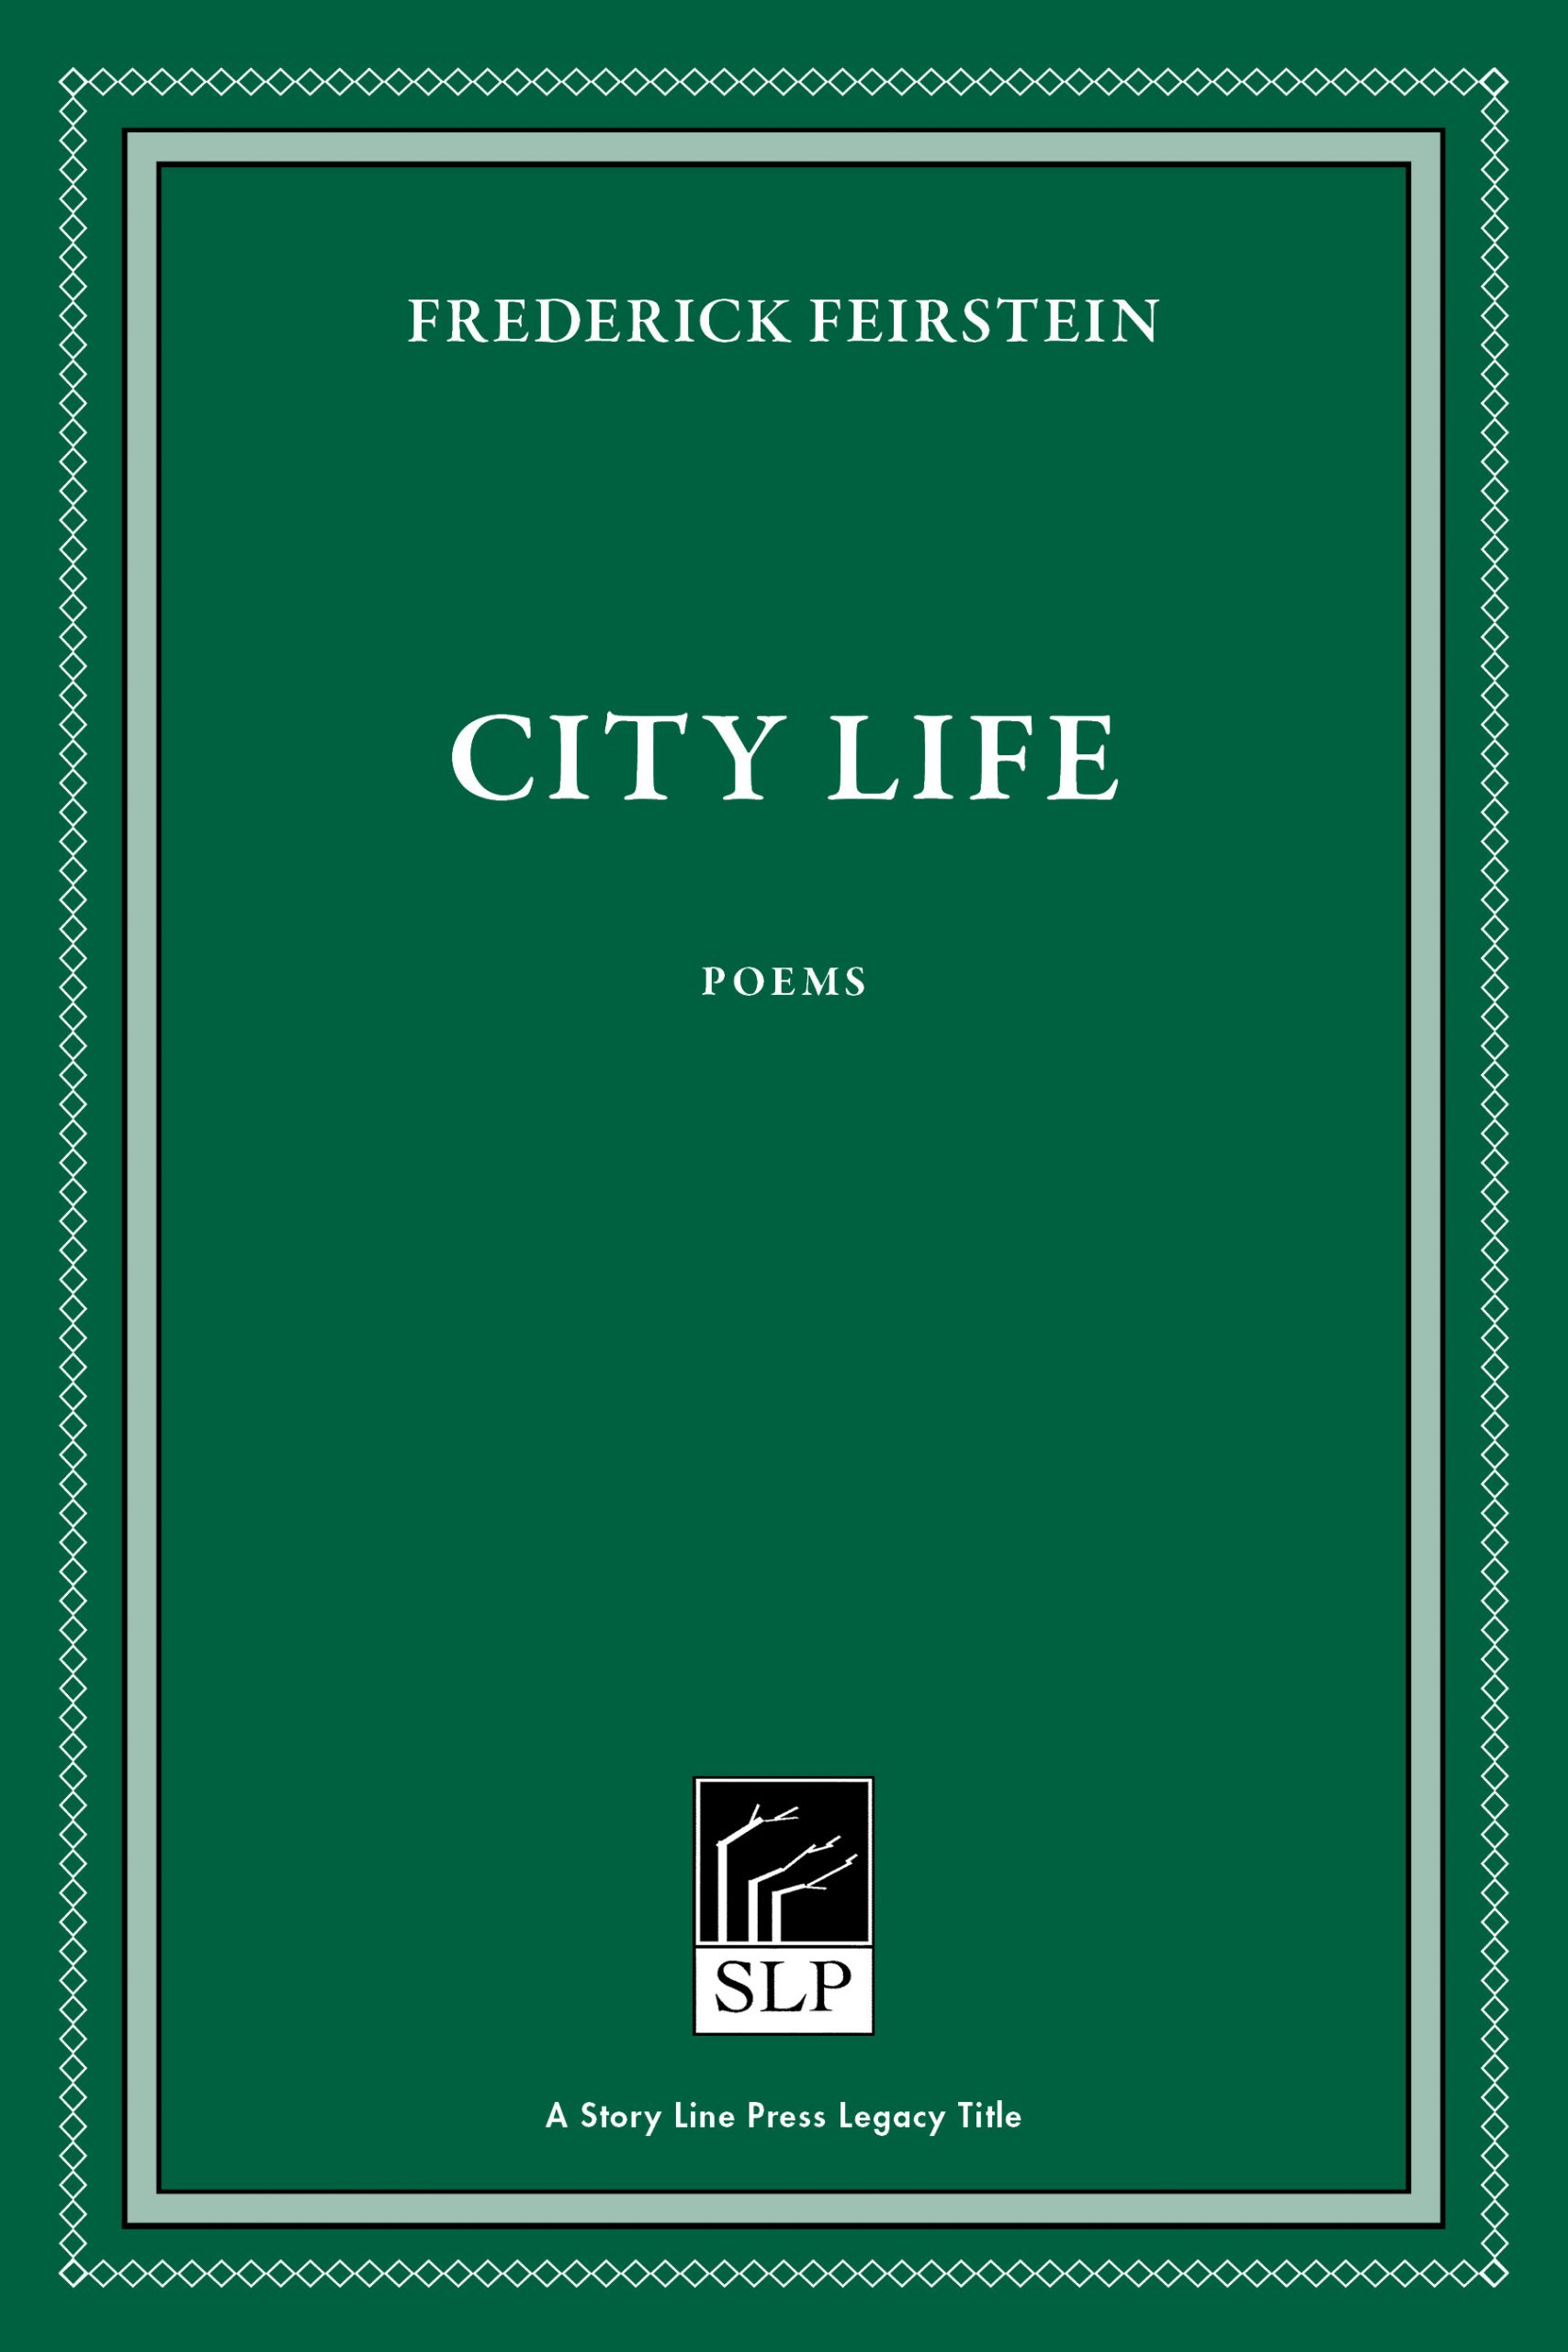 Story line press legacy tittle Frederick Feirstein City Life, white text against emerald green background.